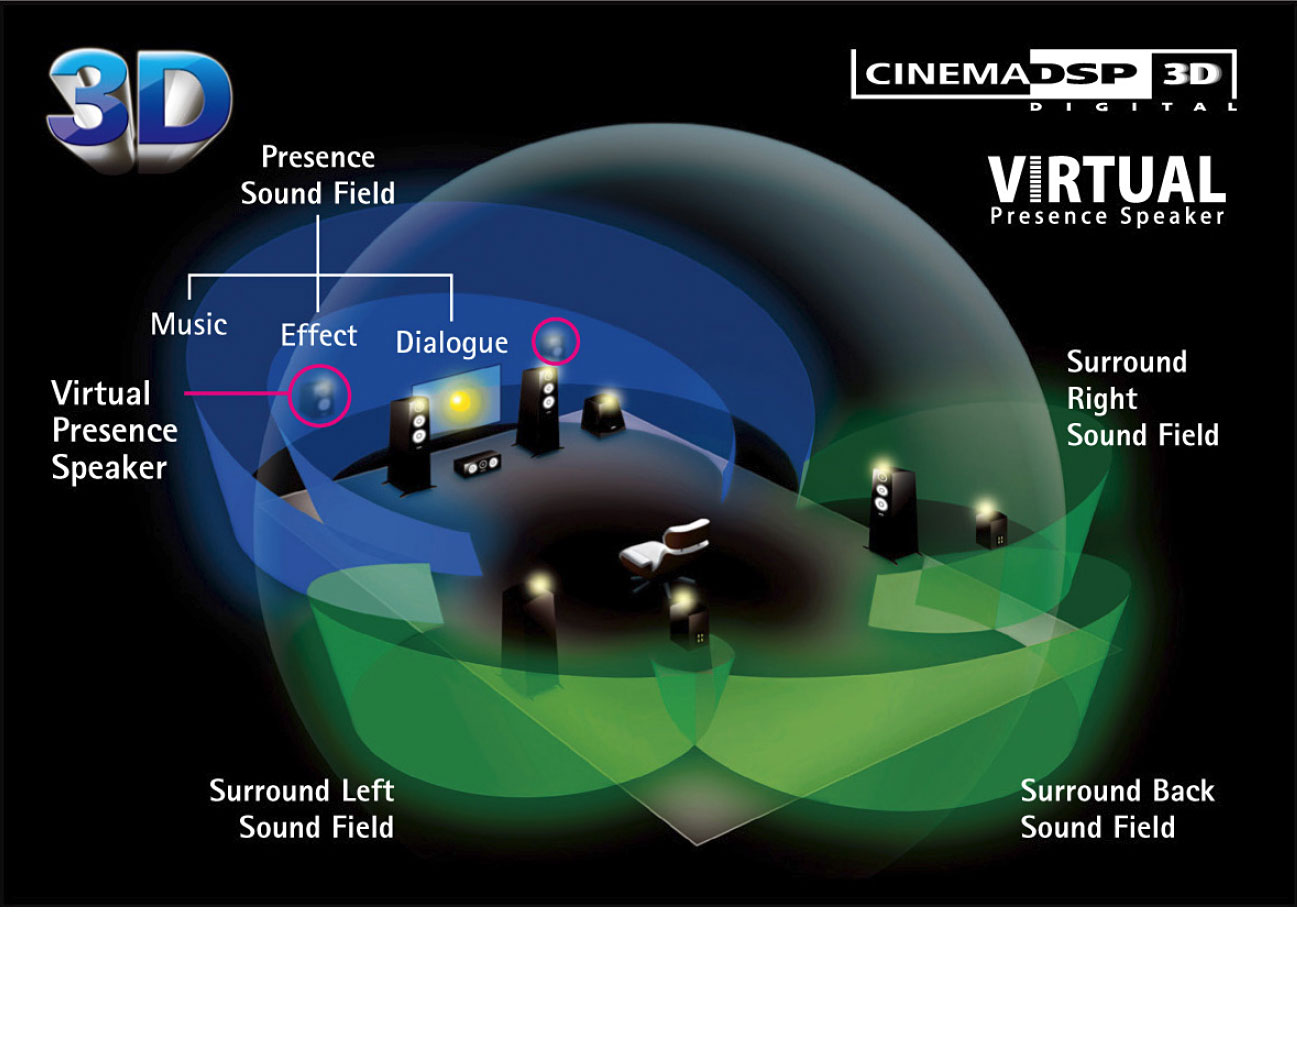 [ Surround-realisme ] HD-audio med CINEMA DSP 3D og Virtual Presence-høyttaler